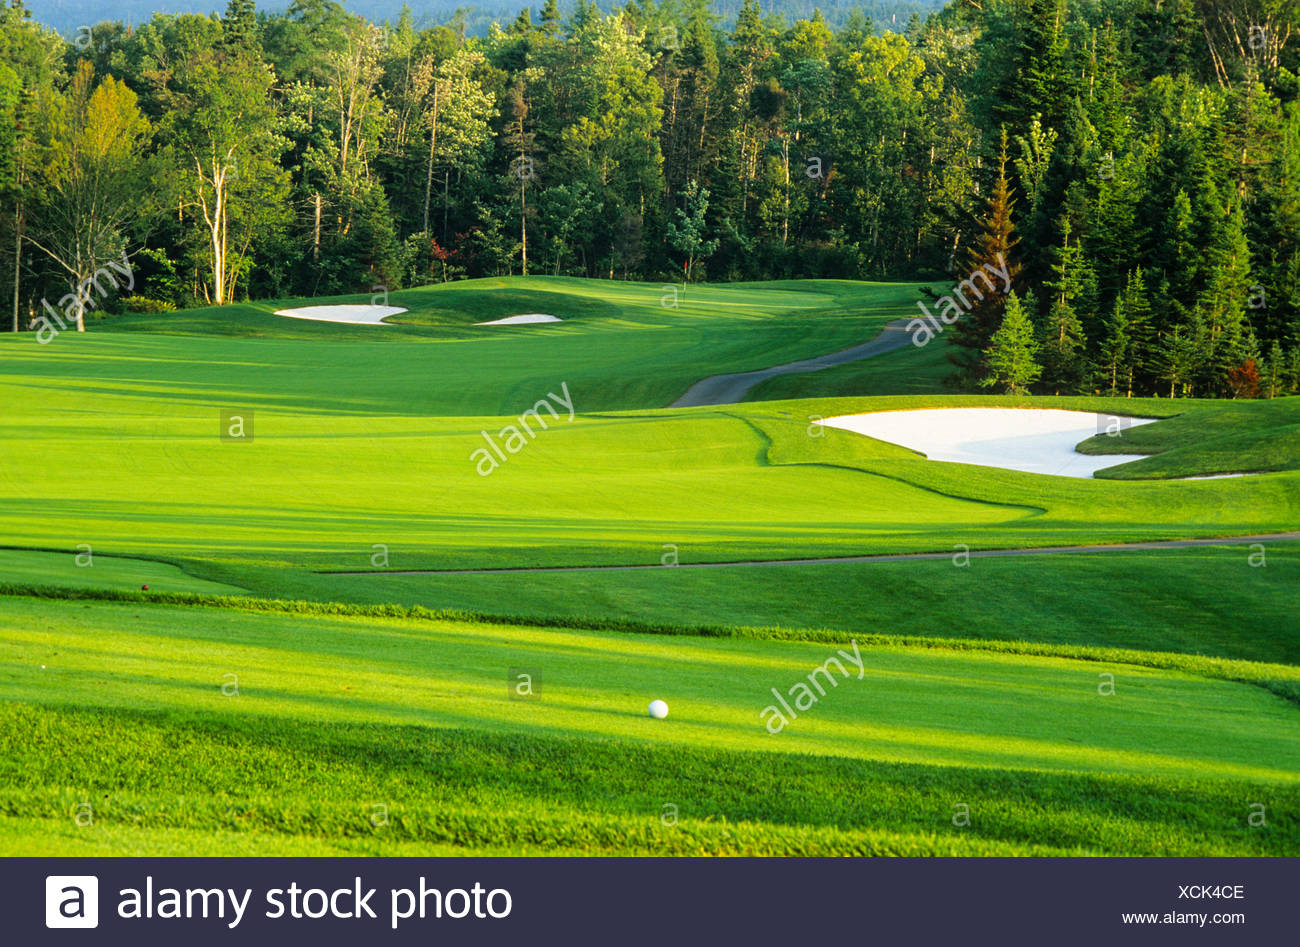 Golf Bell Stock Photos Amp Golf Bell Stock Images Alamy